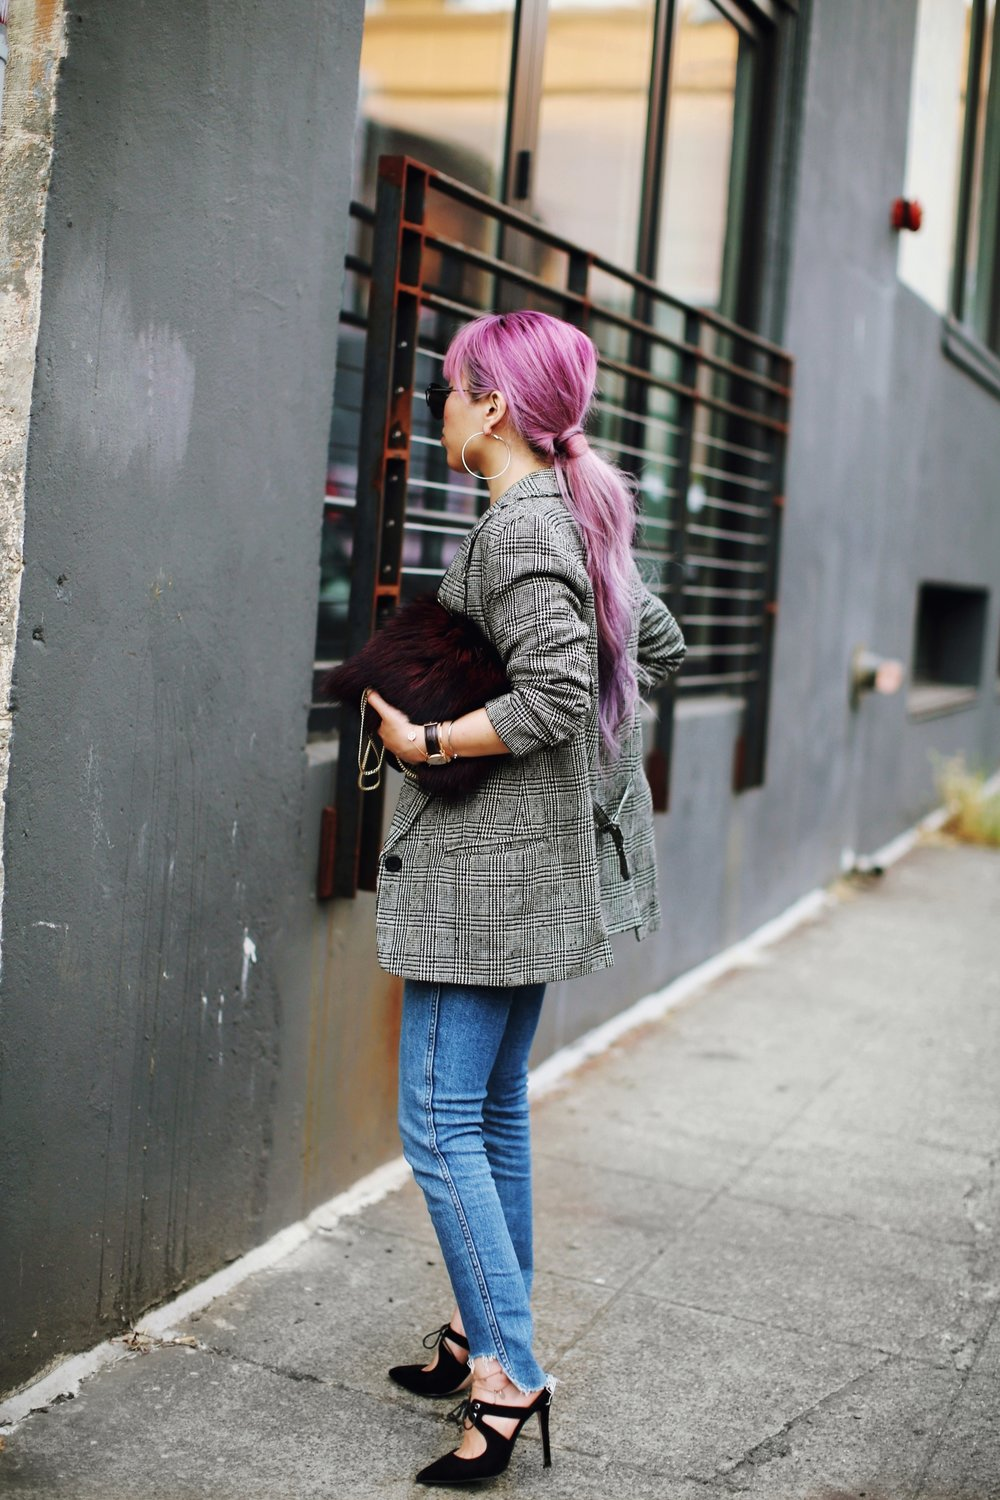 Nordstrom Plaid Blazer_Vintage Rockband Tee_Free People High Waisted Jeans_Daniel Wellington Watch_ASOS Black Mules_DVF Fur Bag_Pink Hair_Aika's Love Closet_Seattle Fashion Style Blogger_Japanese 2